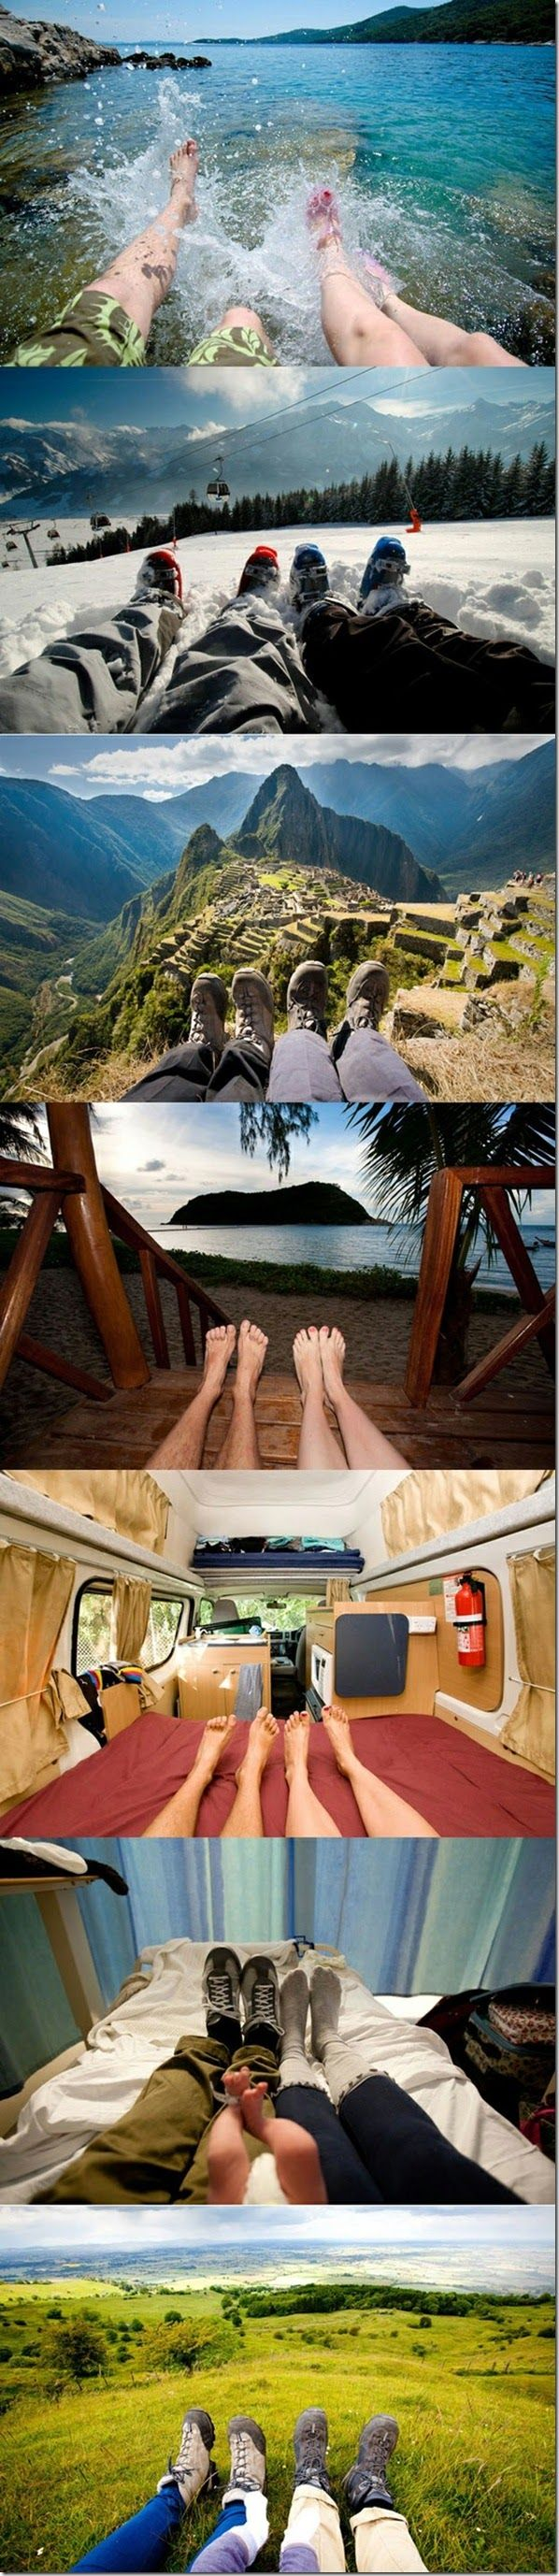 This couple takes a picture of their feet wherever they travel.  Seriously, gives me an idea of something we've got to start doing! ♡ this x